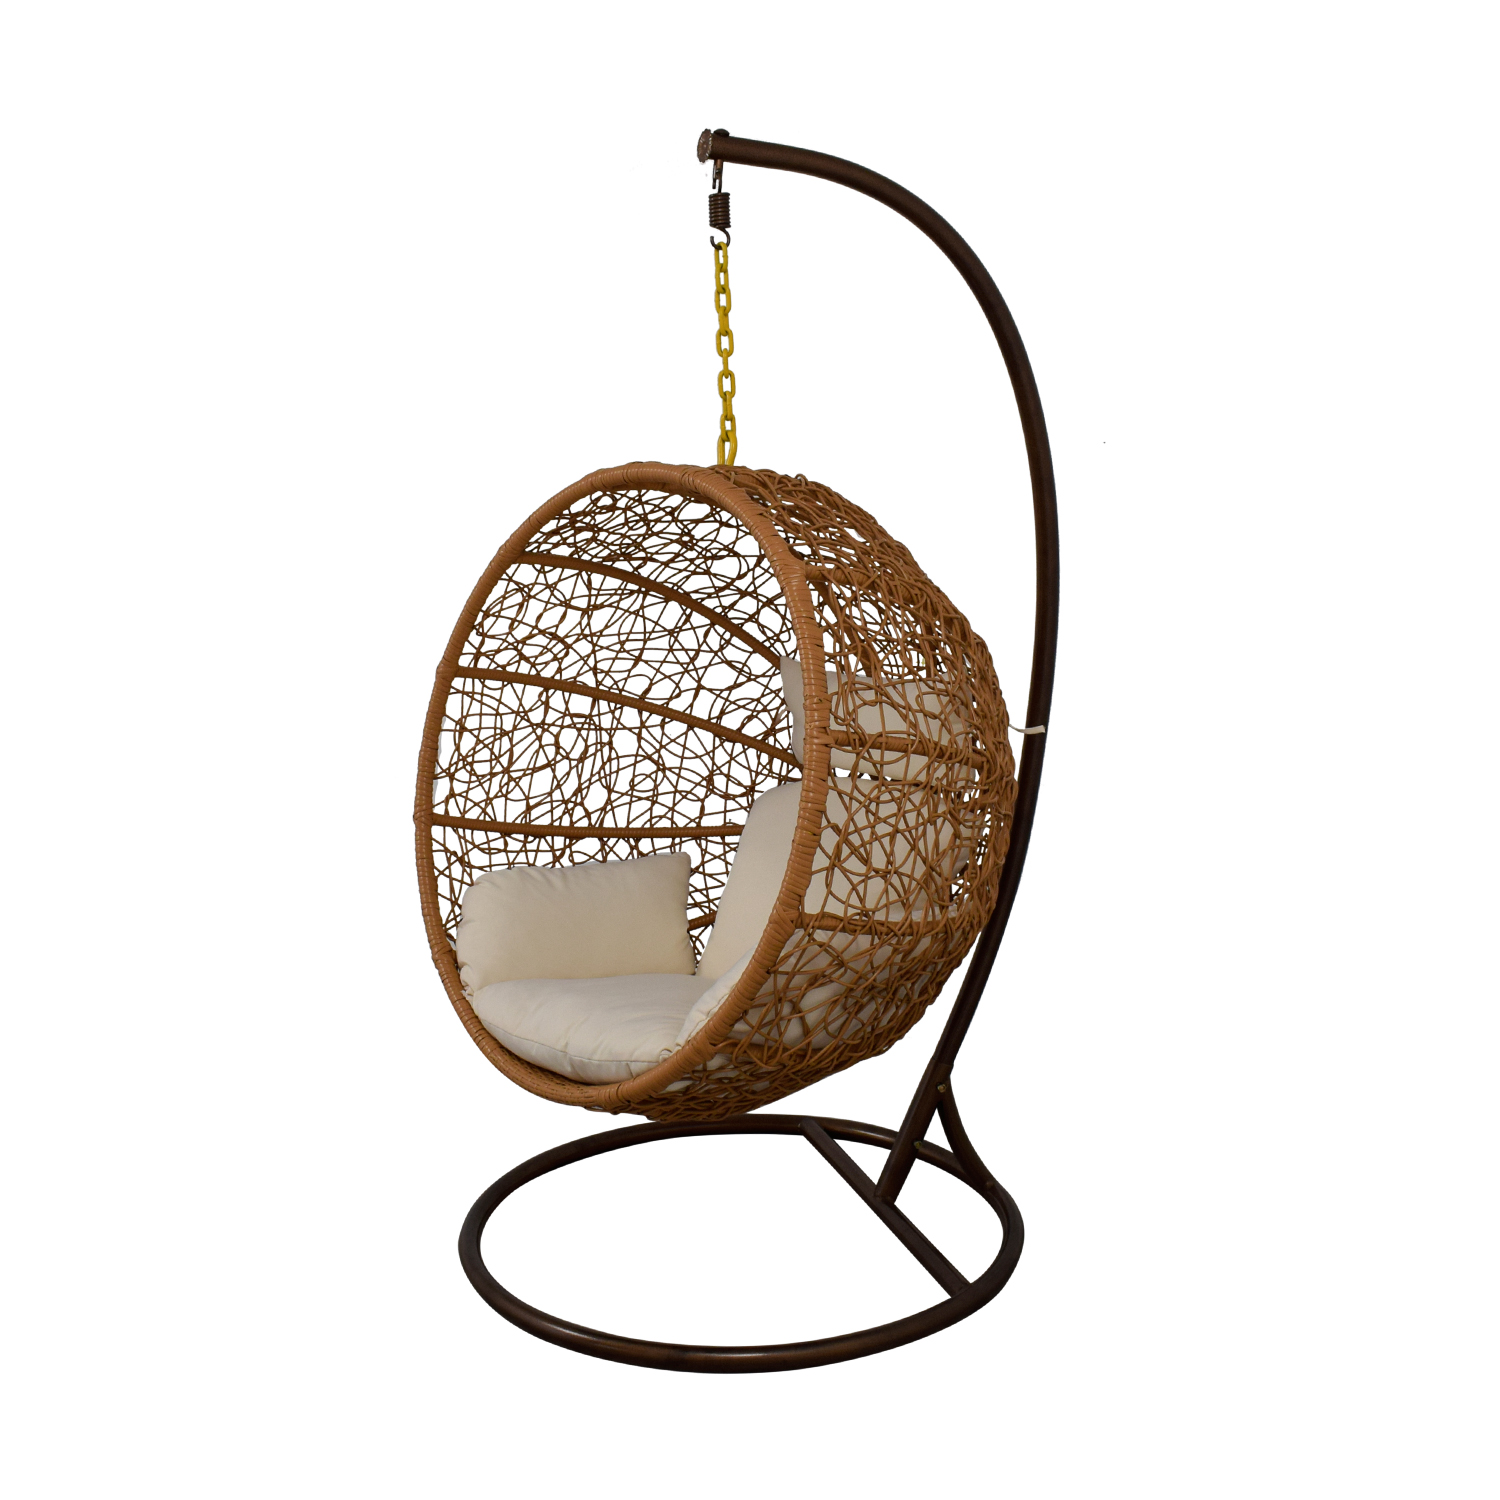 Zolo Zolo Outdoor Wicker Hanging Lounge Chair coupon